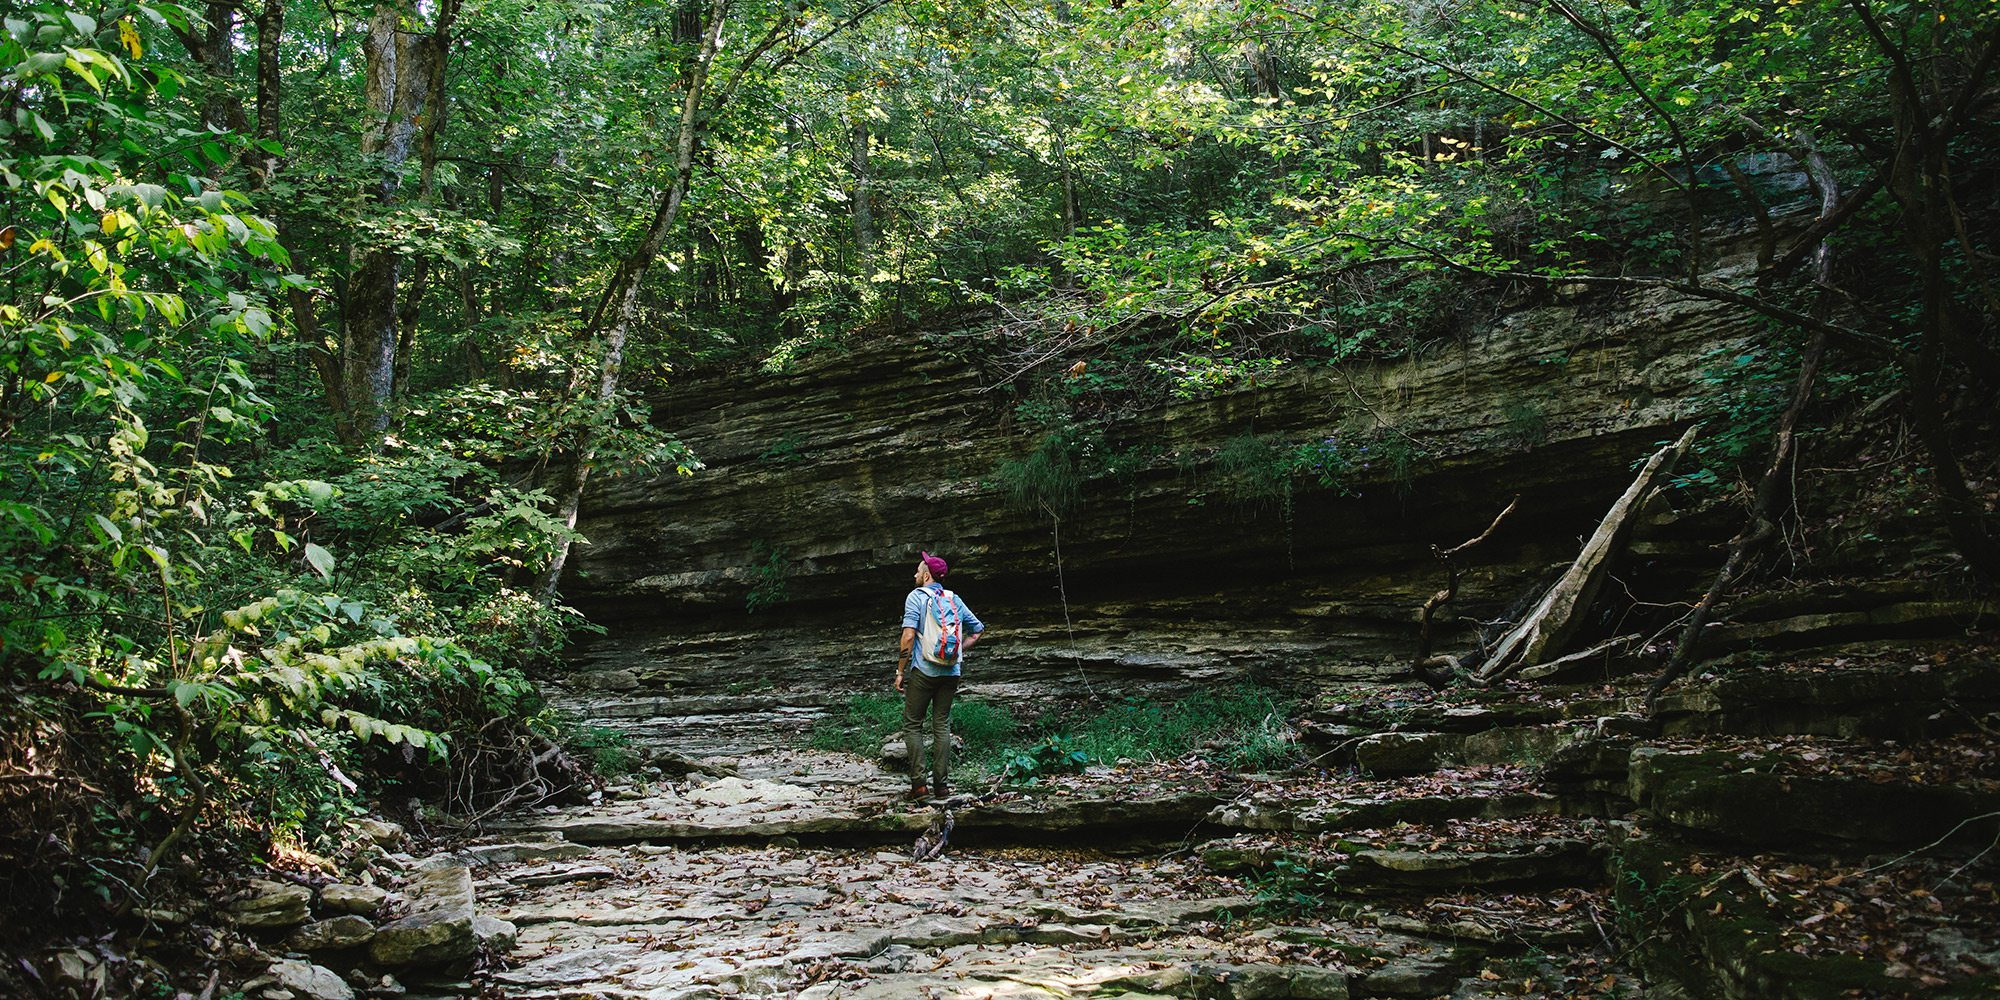 Devils Den Arkansas Map, Devils Eyebrow Natural Area In Arkansas, Devils Den Arkansas Map